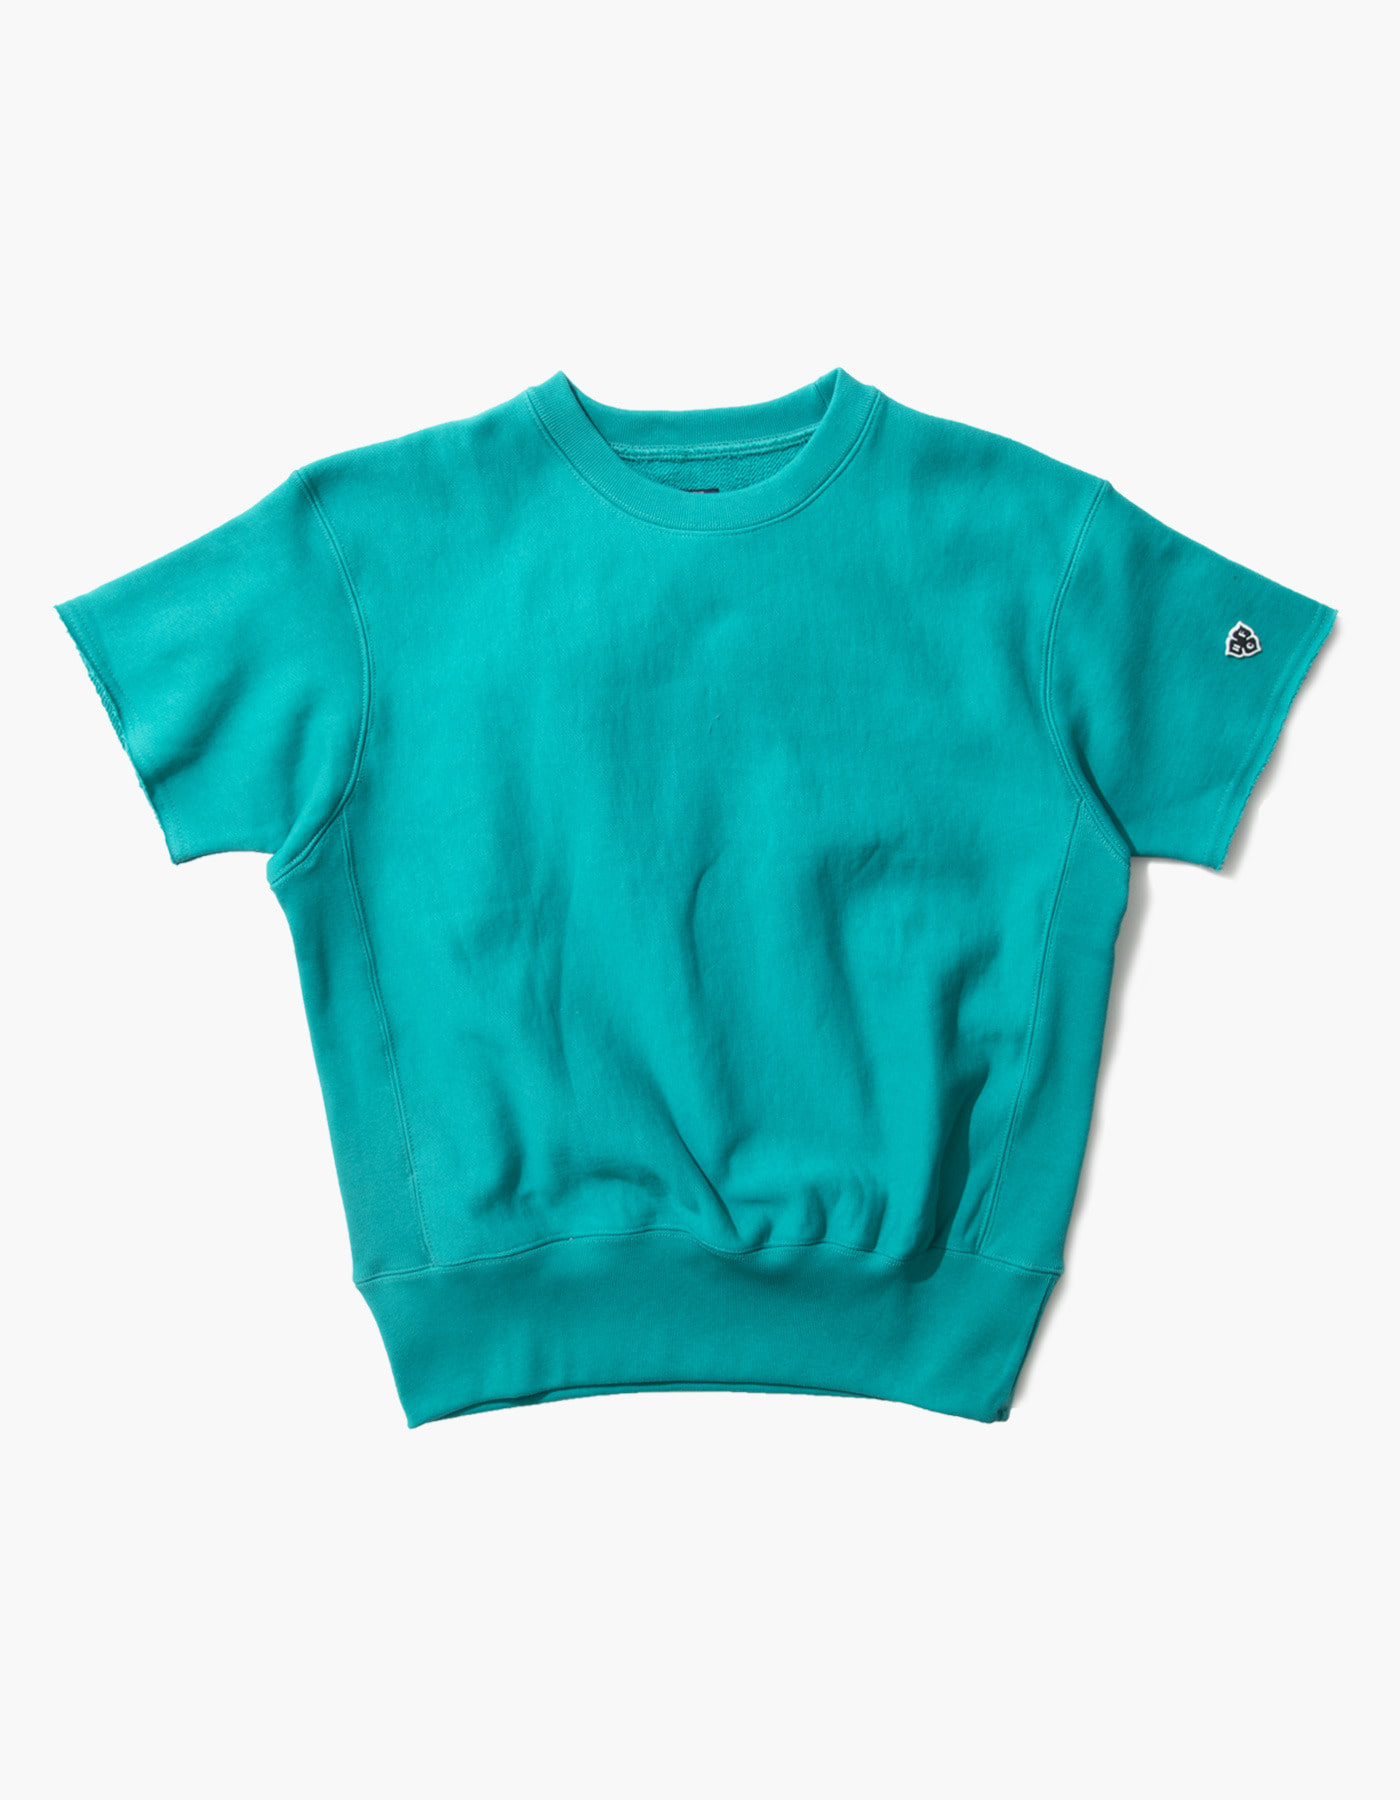 321 GYM CREWNECK HALF SLEEVE / BLUE GREEN